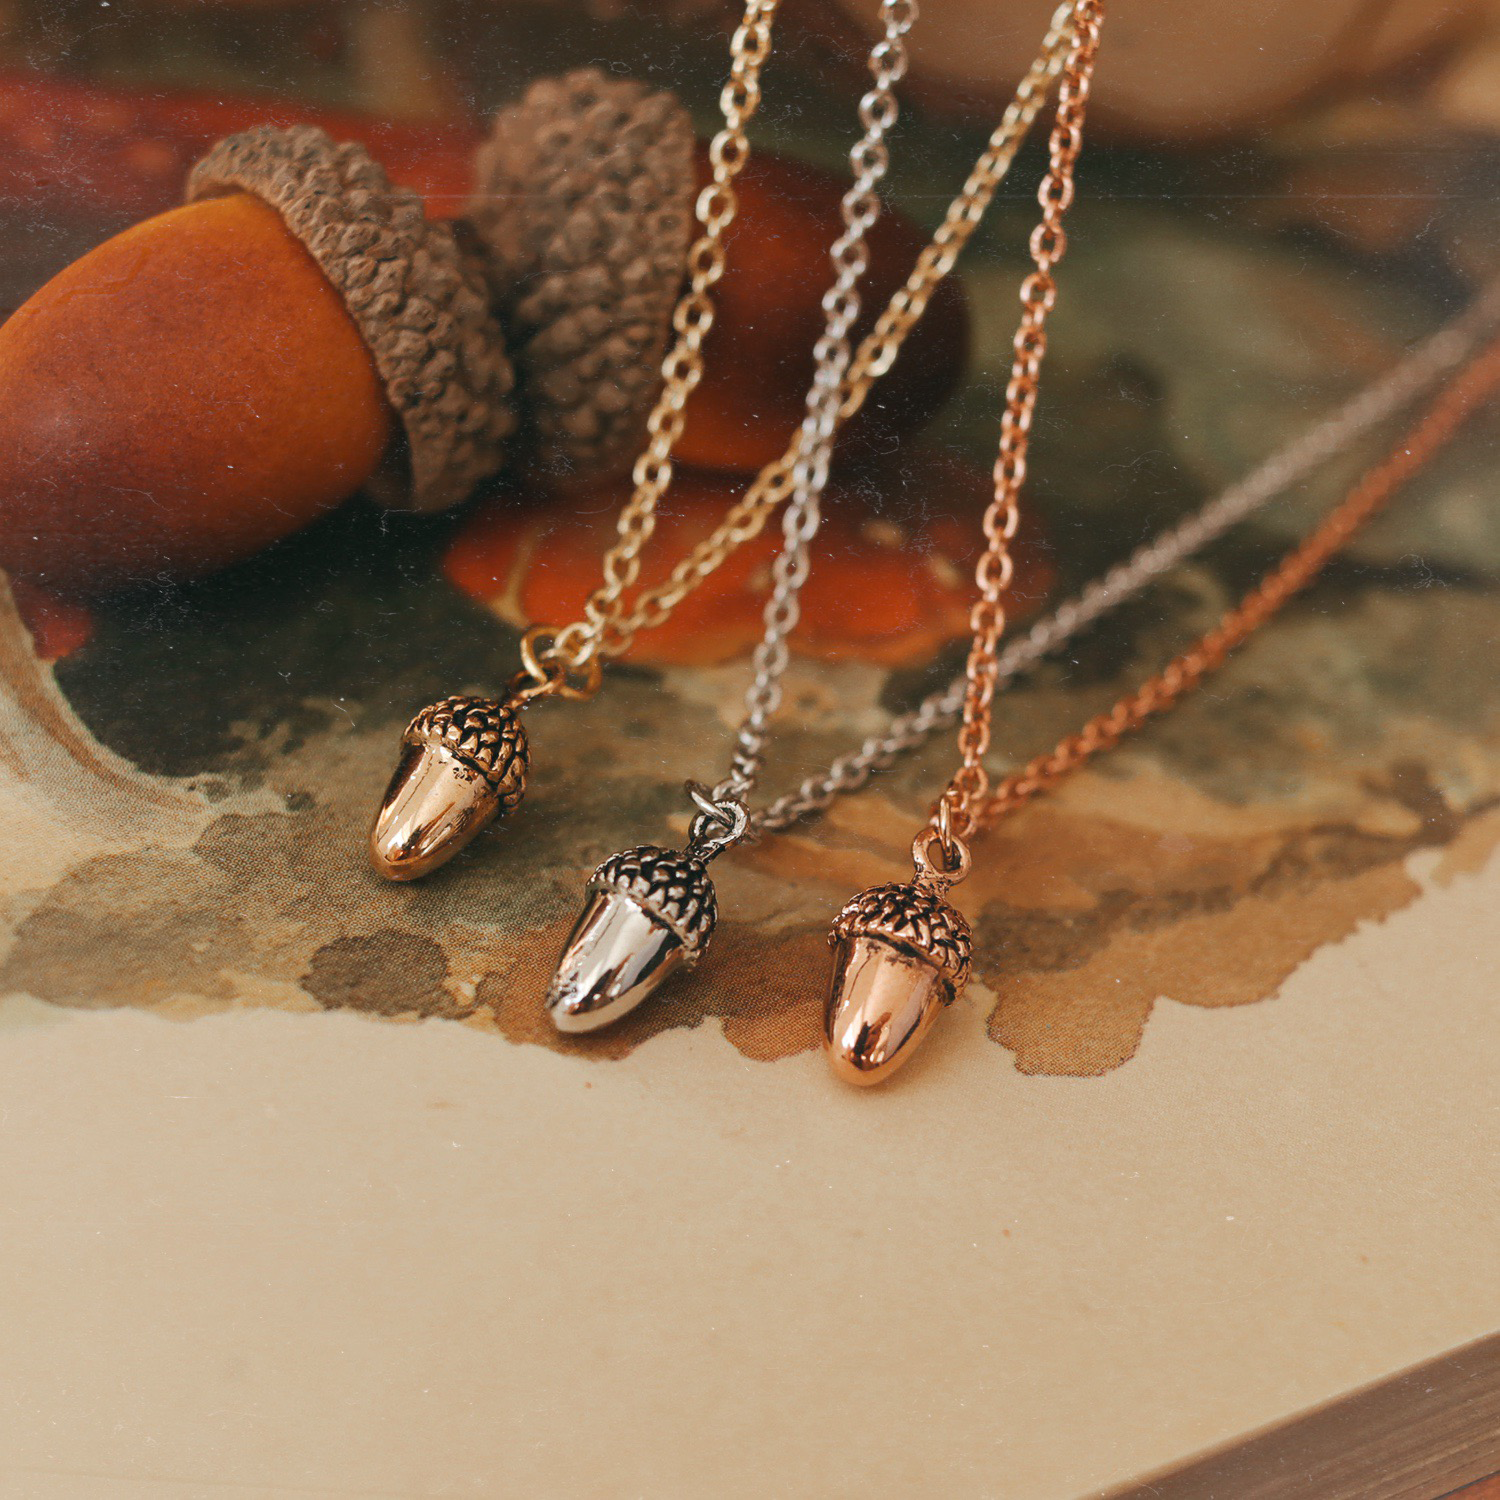 Autumn Woodlands Pumpkin / Acorn / Toadstool Necklace